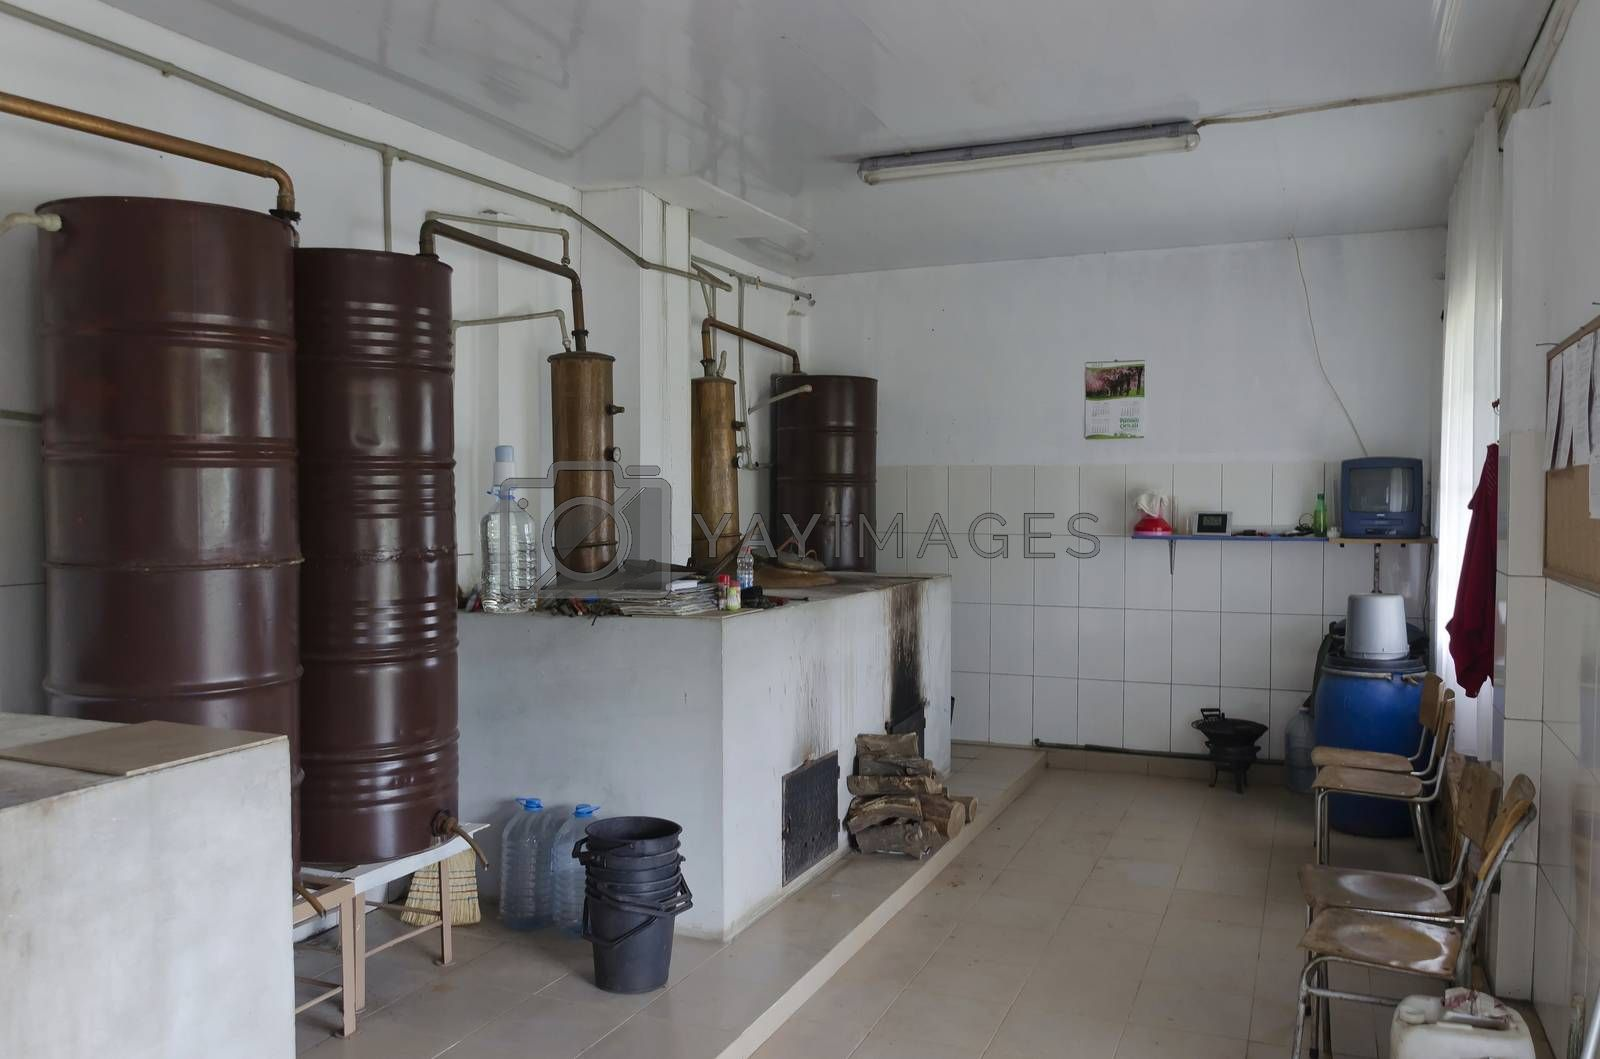 Fragment of place in distillery for vapor and distill grapes brandy, Bulgaria